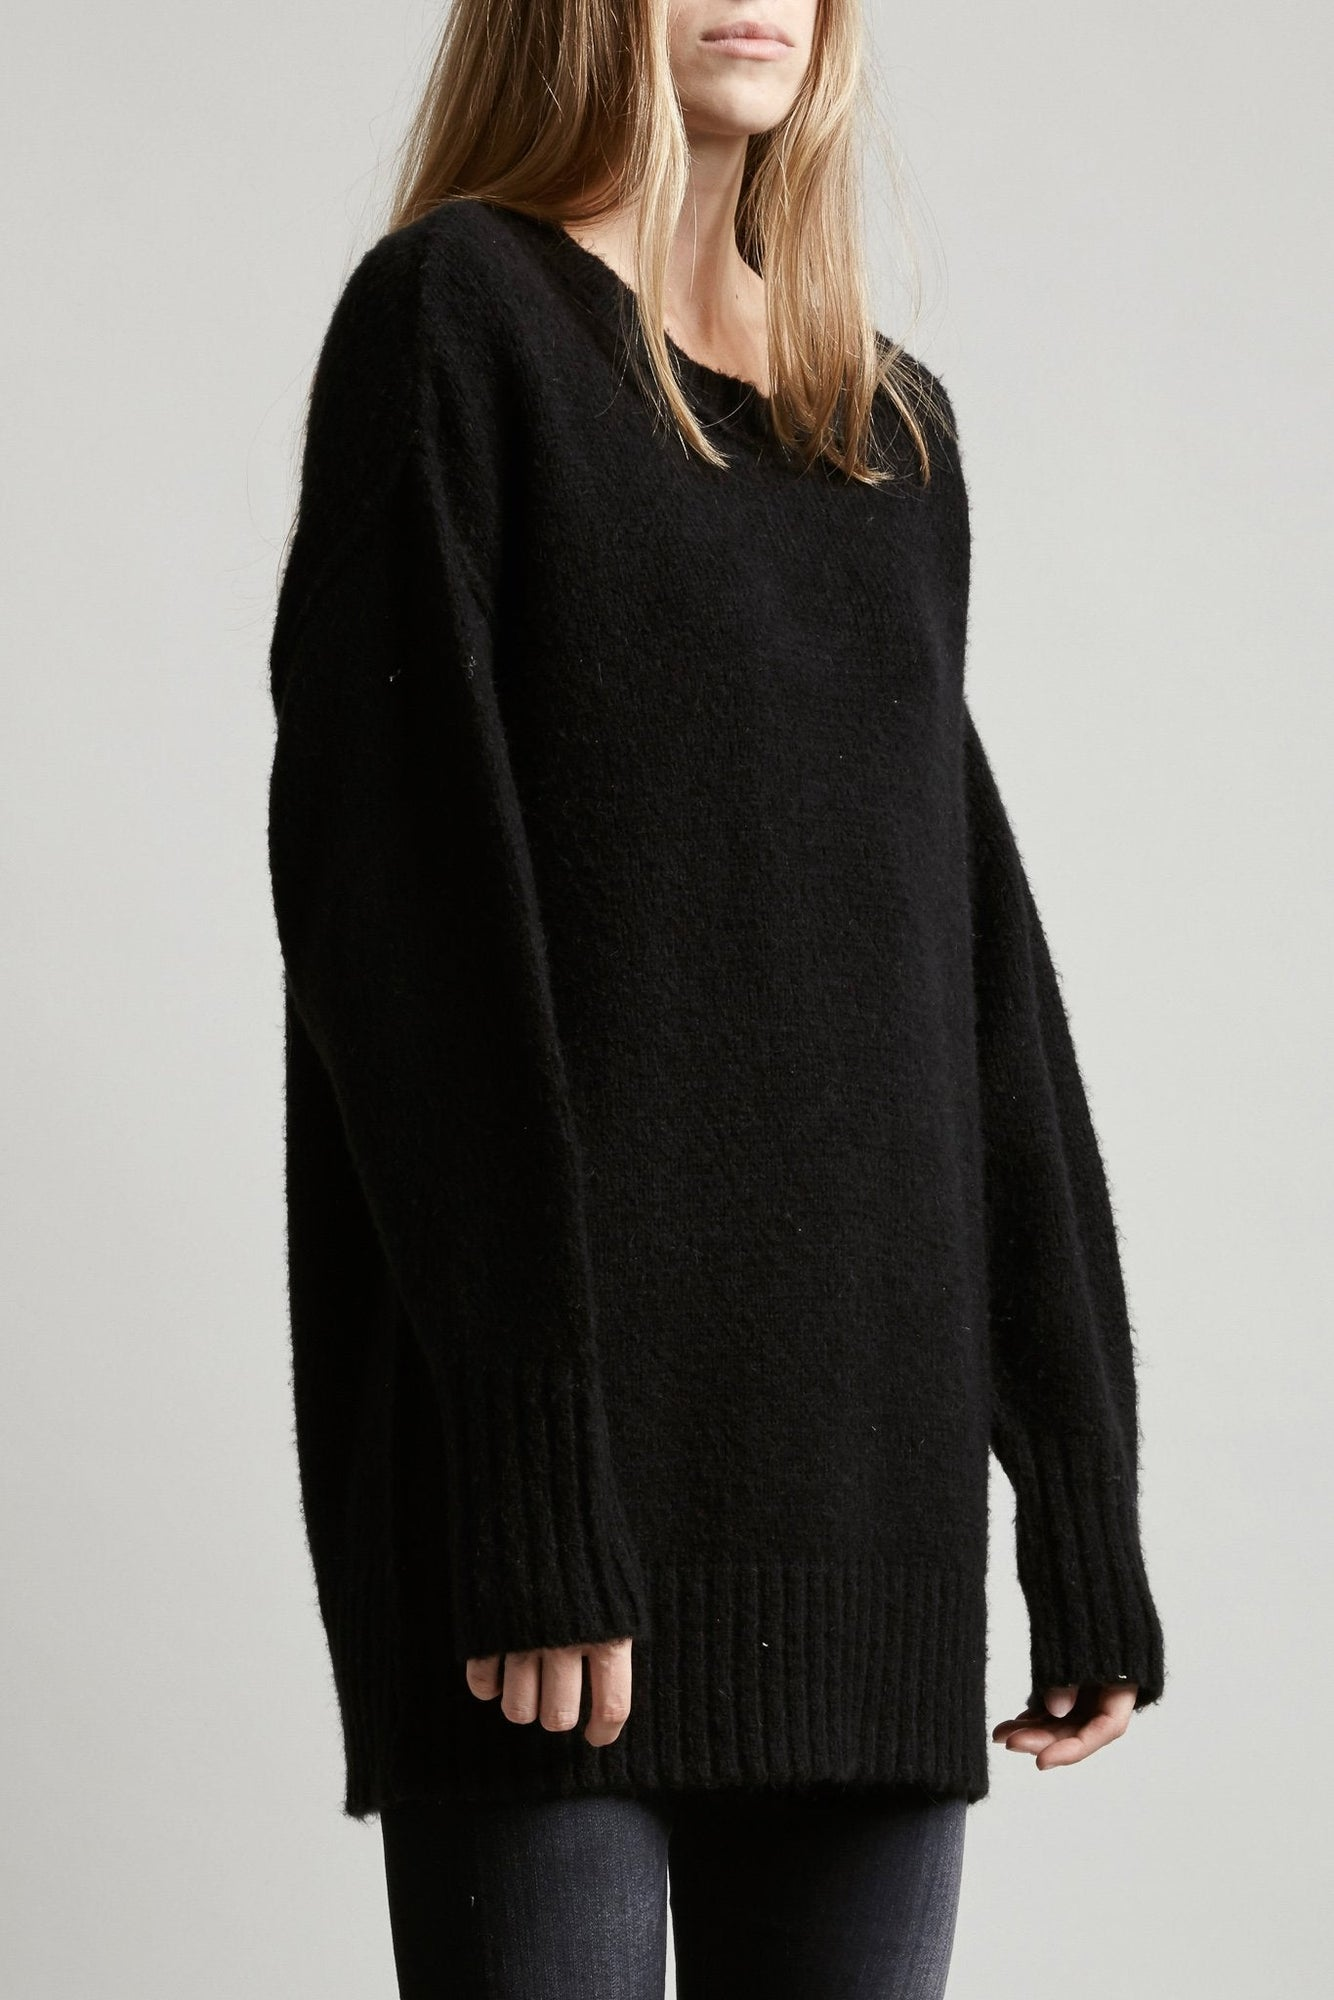 Oversized Crewneck Sweater